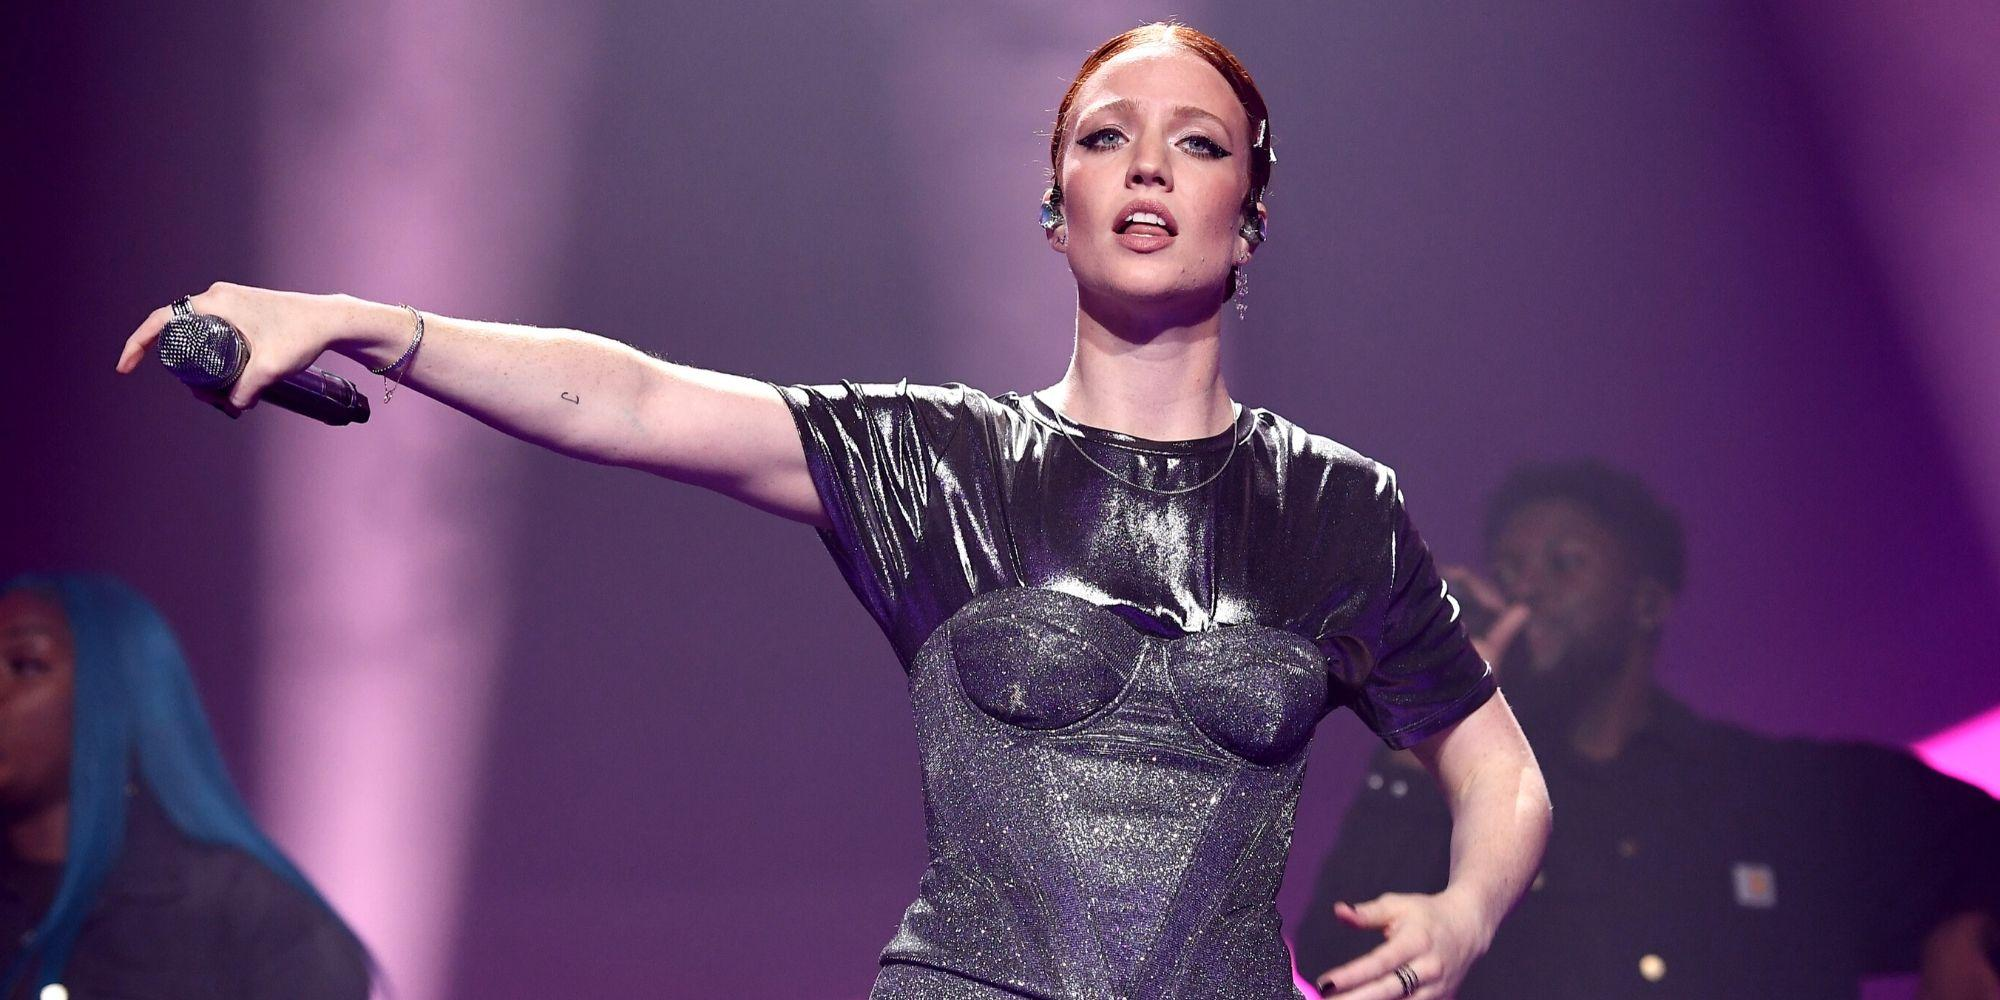 Jess Glynne called out for claiming 'discrimination' after restaurant turns her away for her outfit